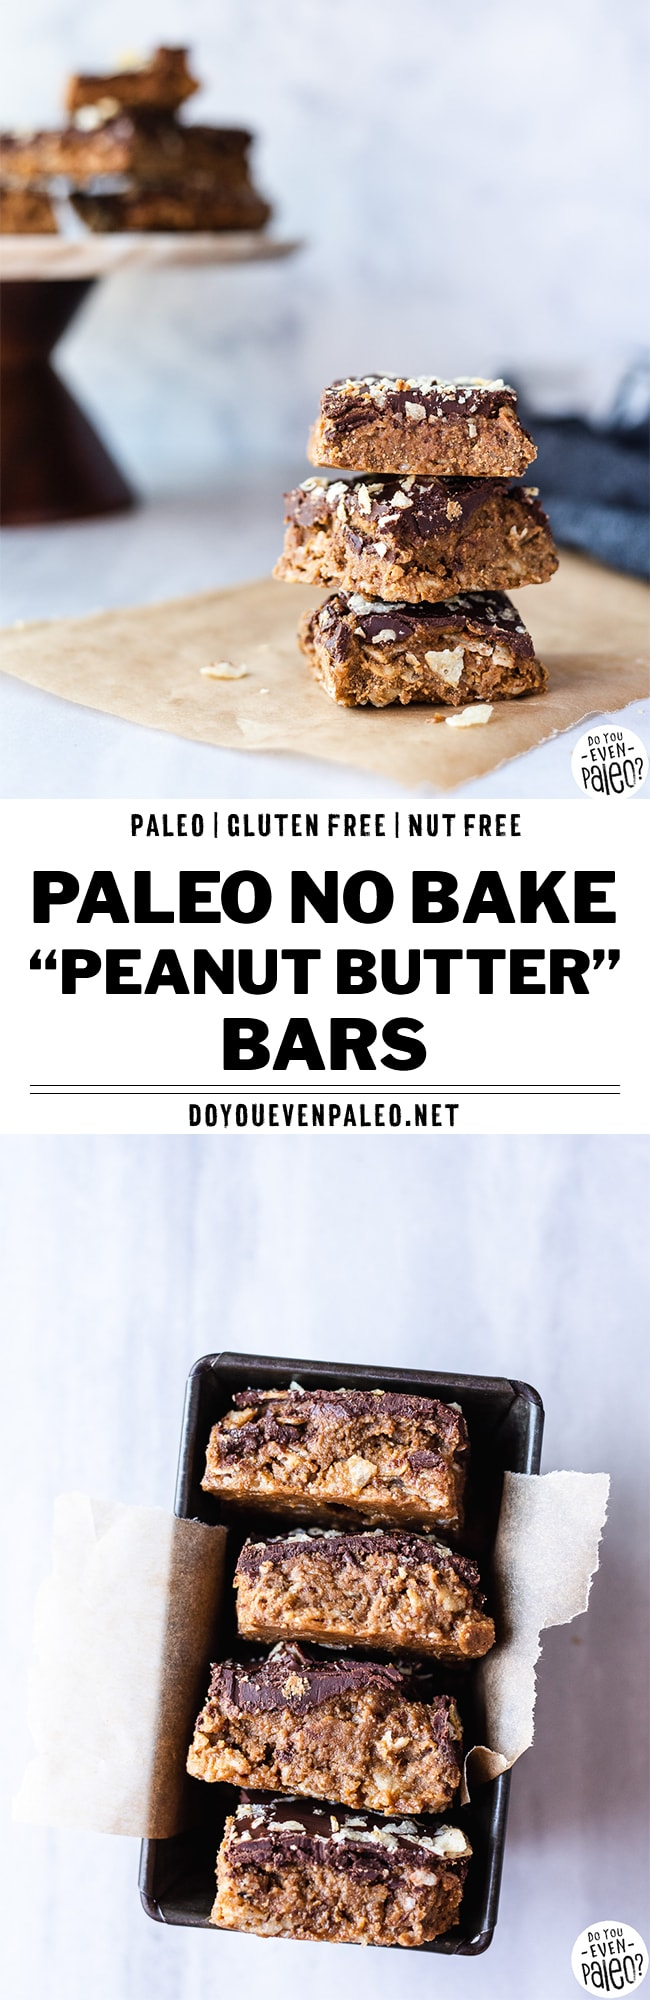 Paleo No Bake Peanut Butter Bars Recipe